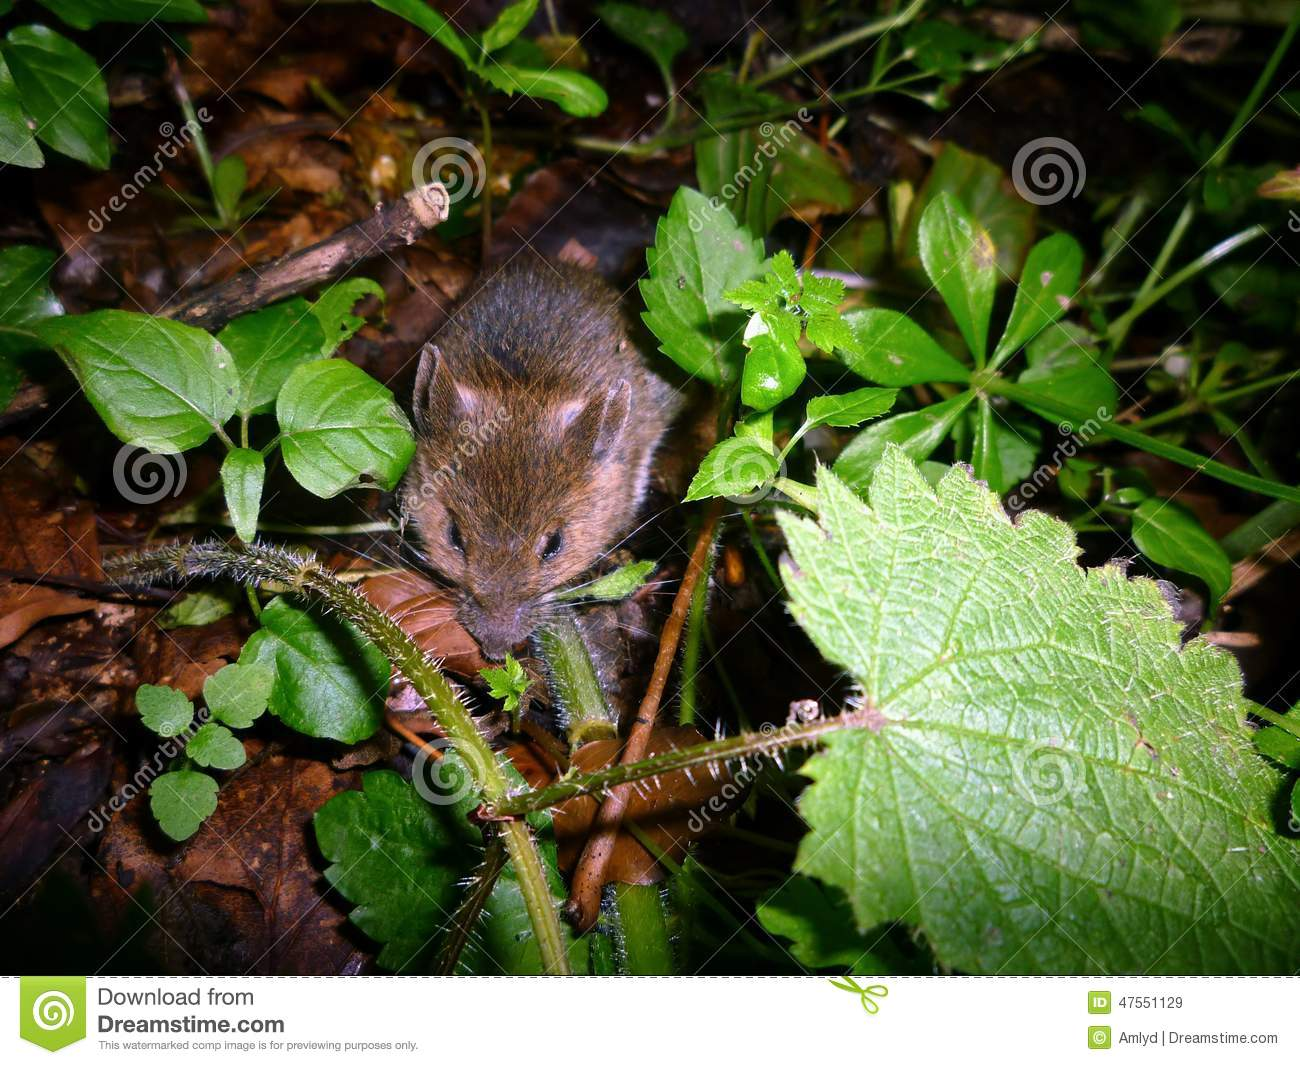 Mouse cowering in woodland floor vegetation